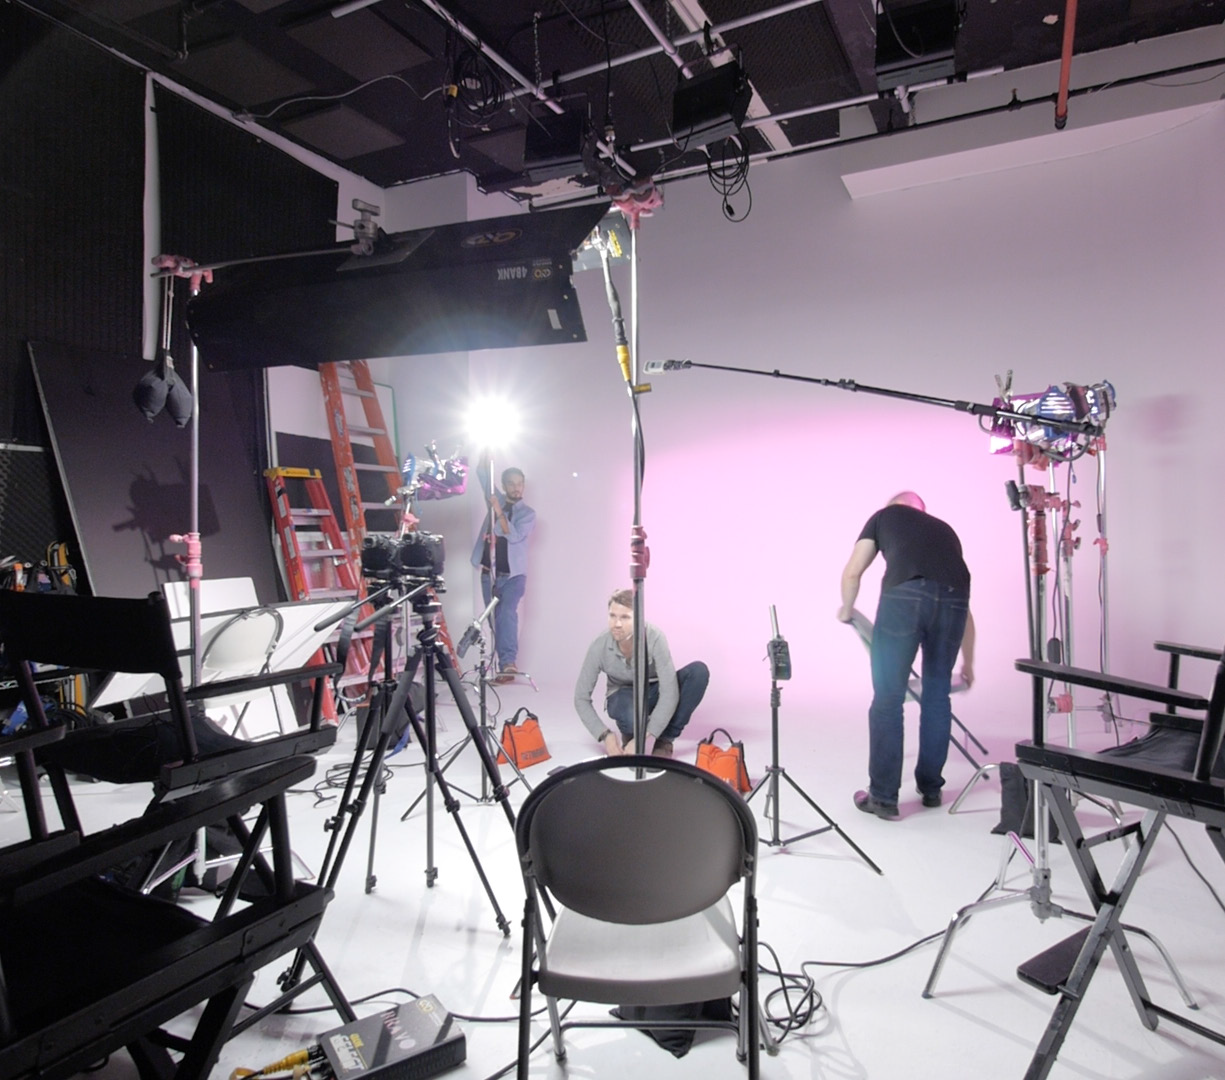 Commercial Video Production And Marketing Company for Hunterdon County, NJ Businesses - Top Notch Cinema - About-us